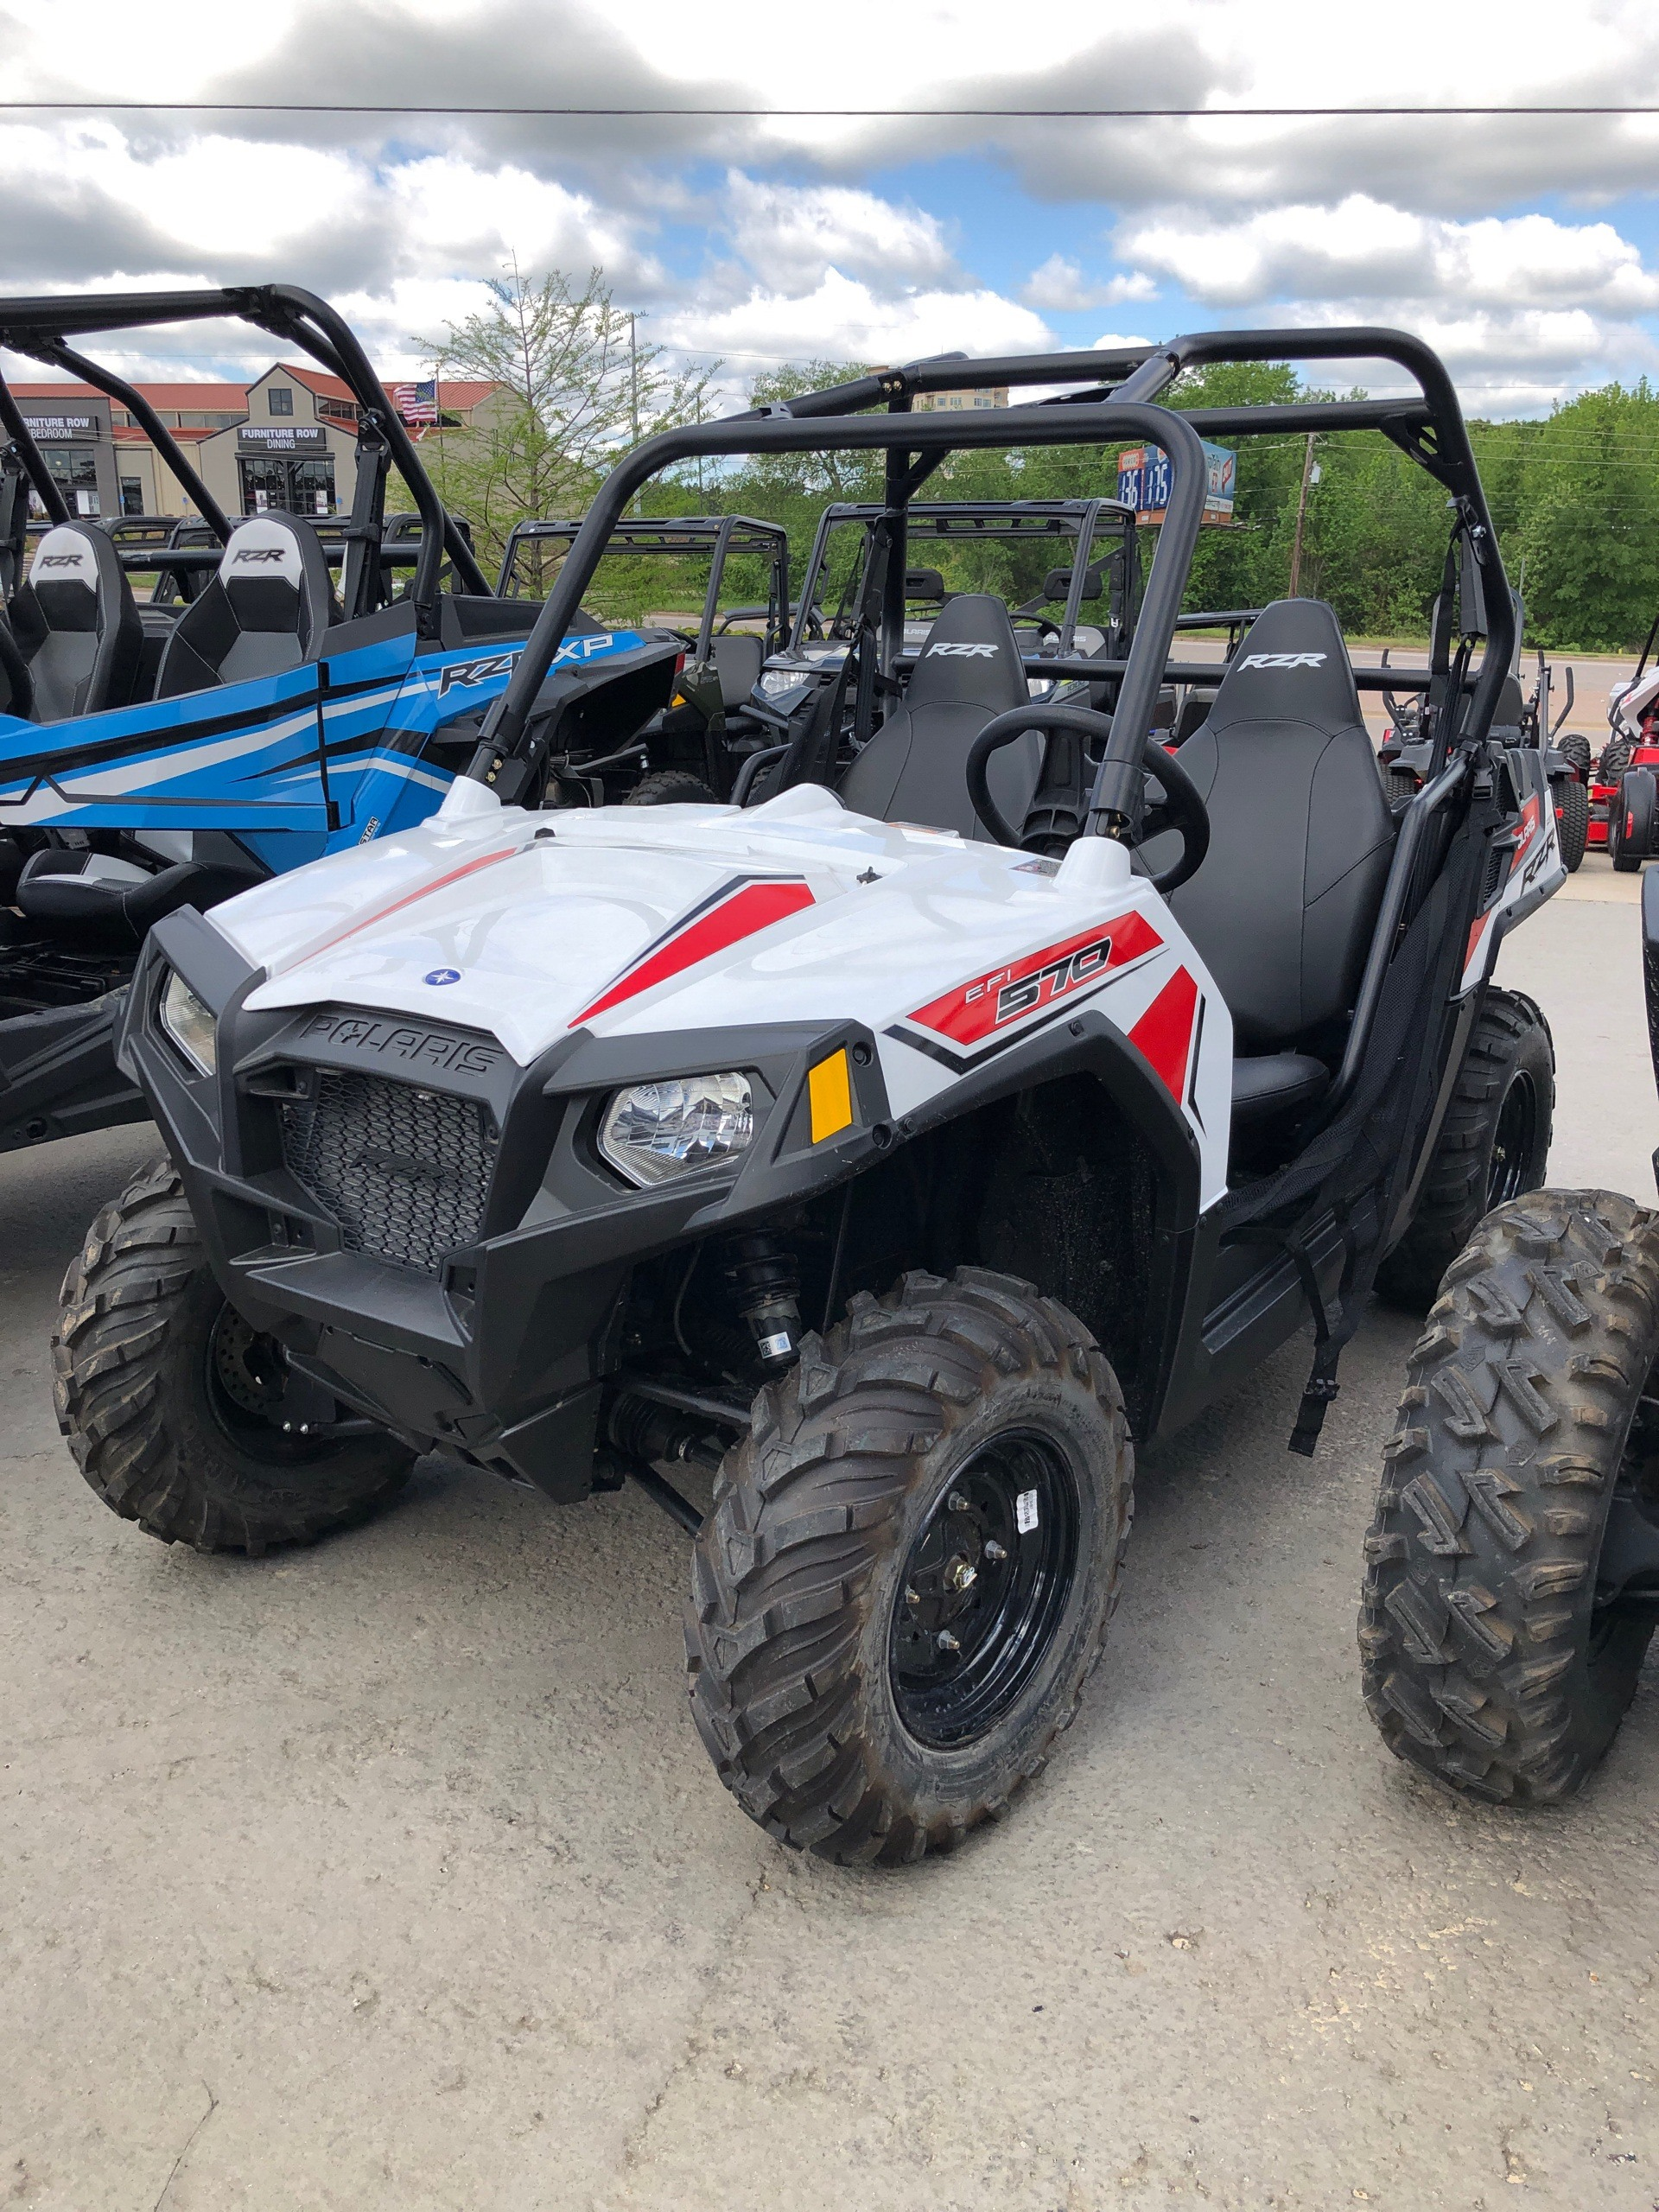 2019 Polaris RZR 570 for sale 9005